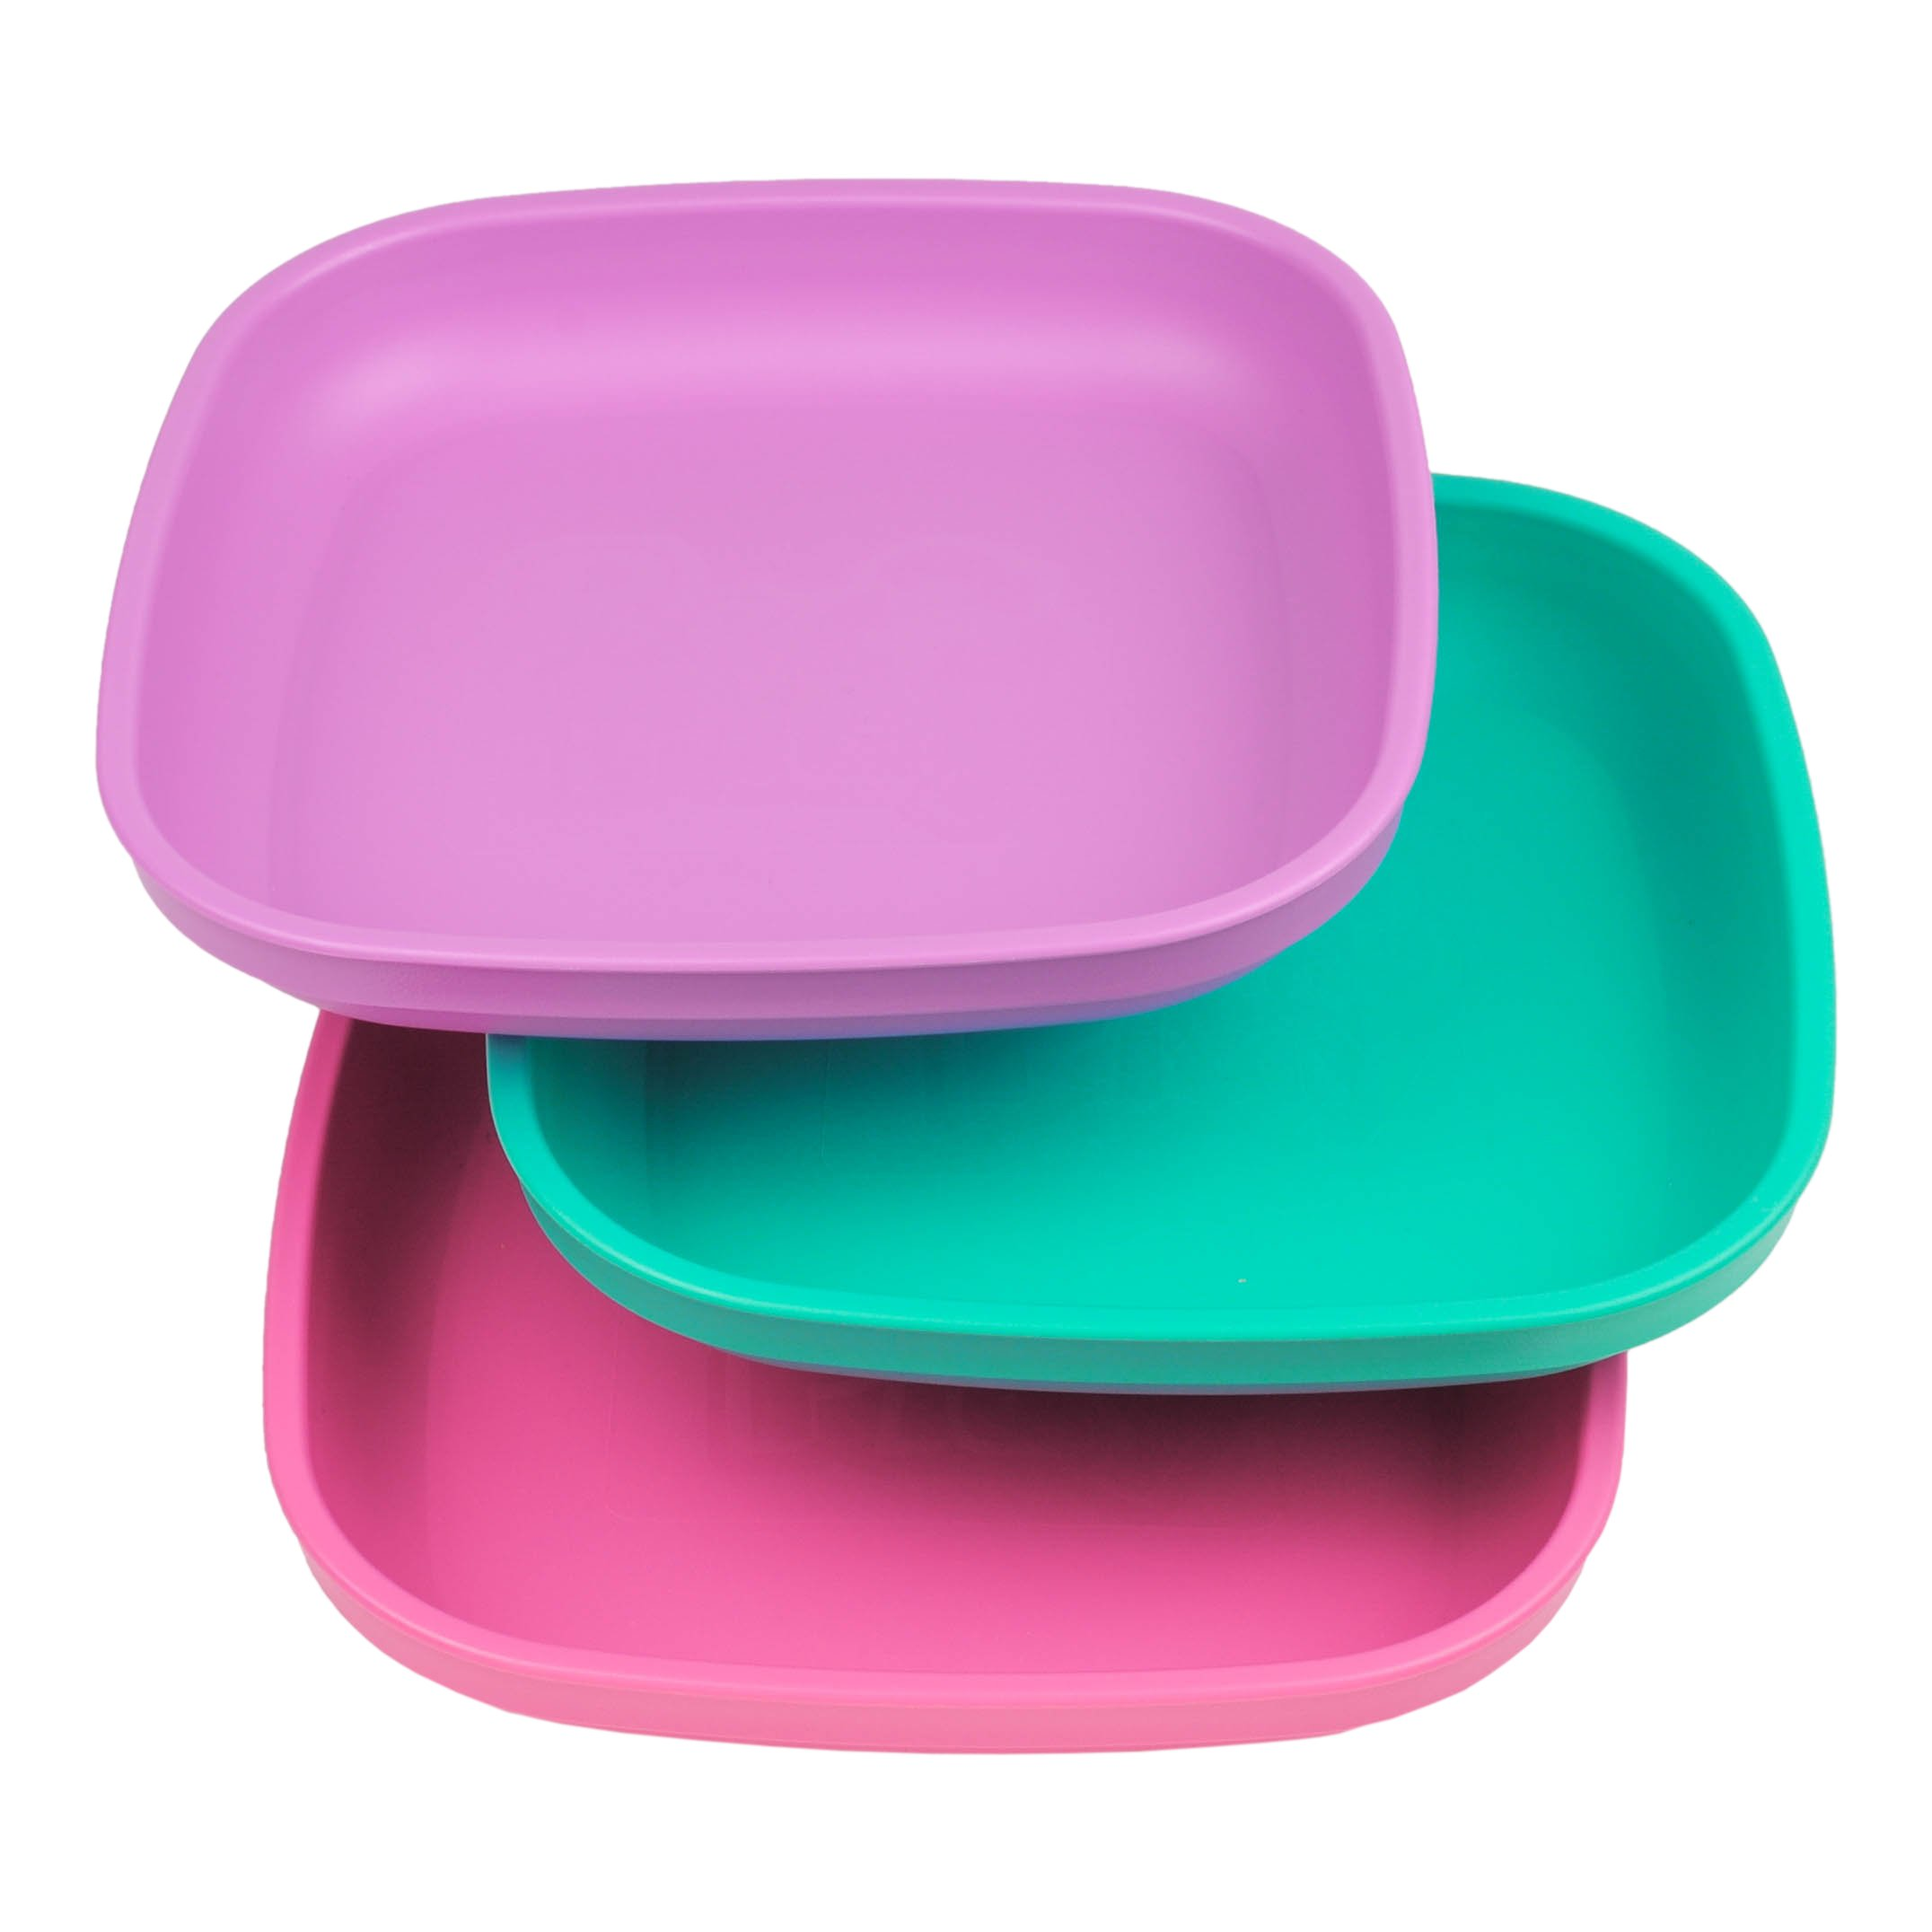 Re-Play Made in USA 3pk Plates with Deep Sides for Easy Baby, Toddler, Child Feeding - Purple, Aqua, Bright Pink (Sparkle)